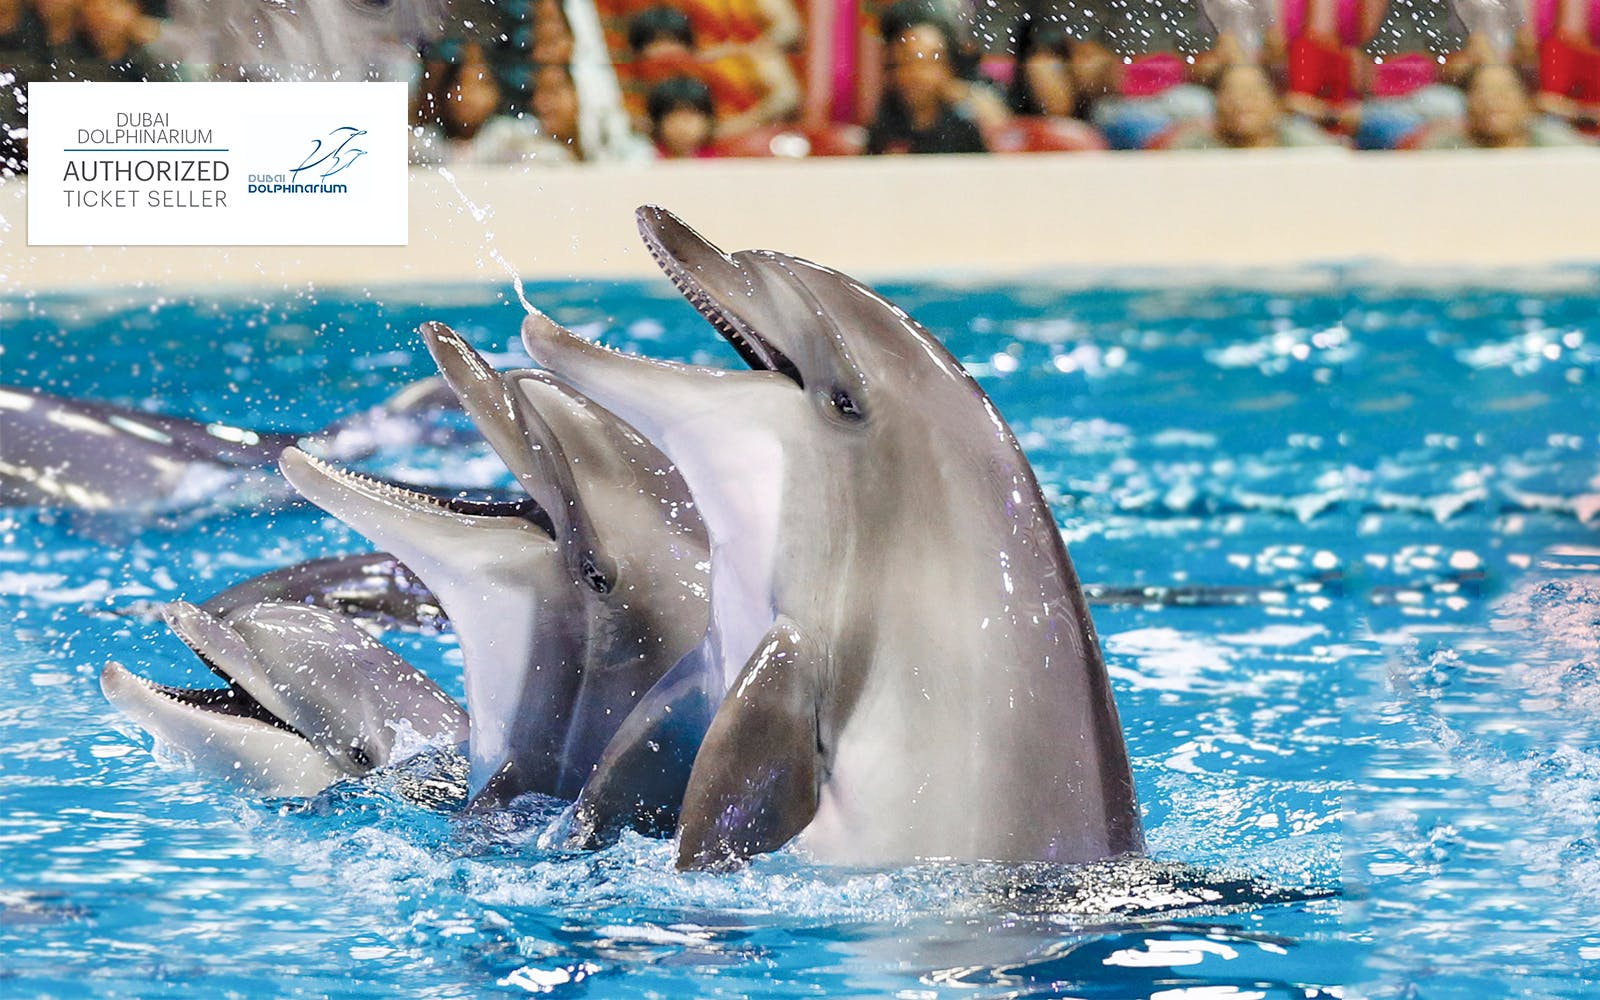 Dubai Dolphinarium: Illusion & Dolphin and Seal Show